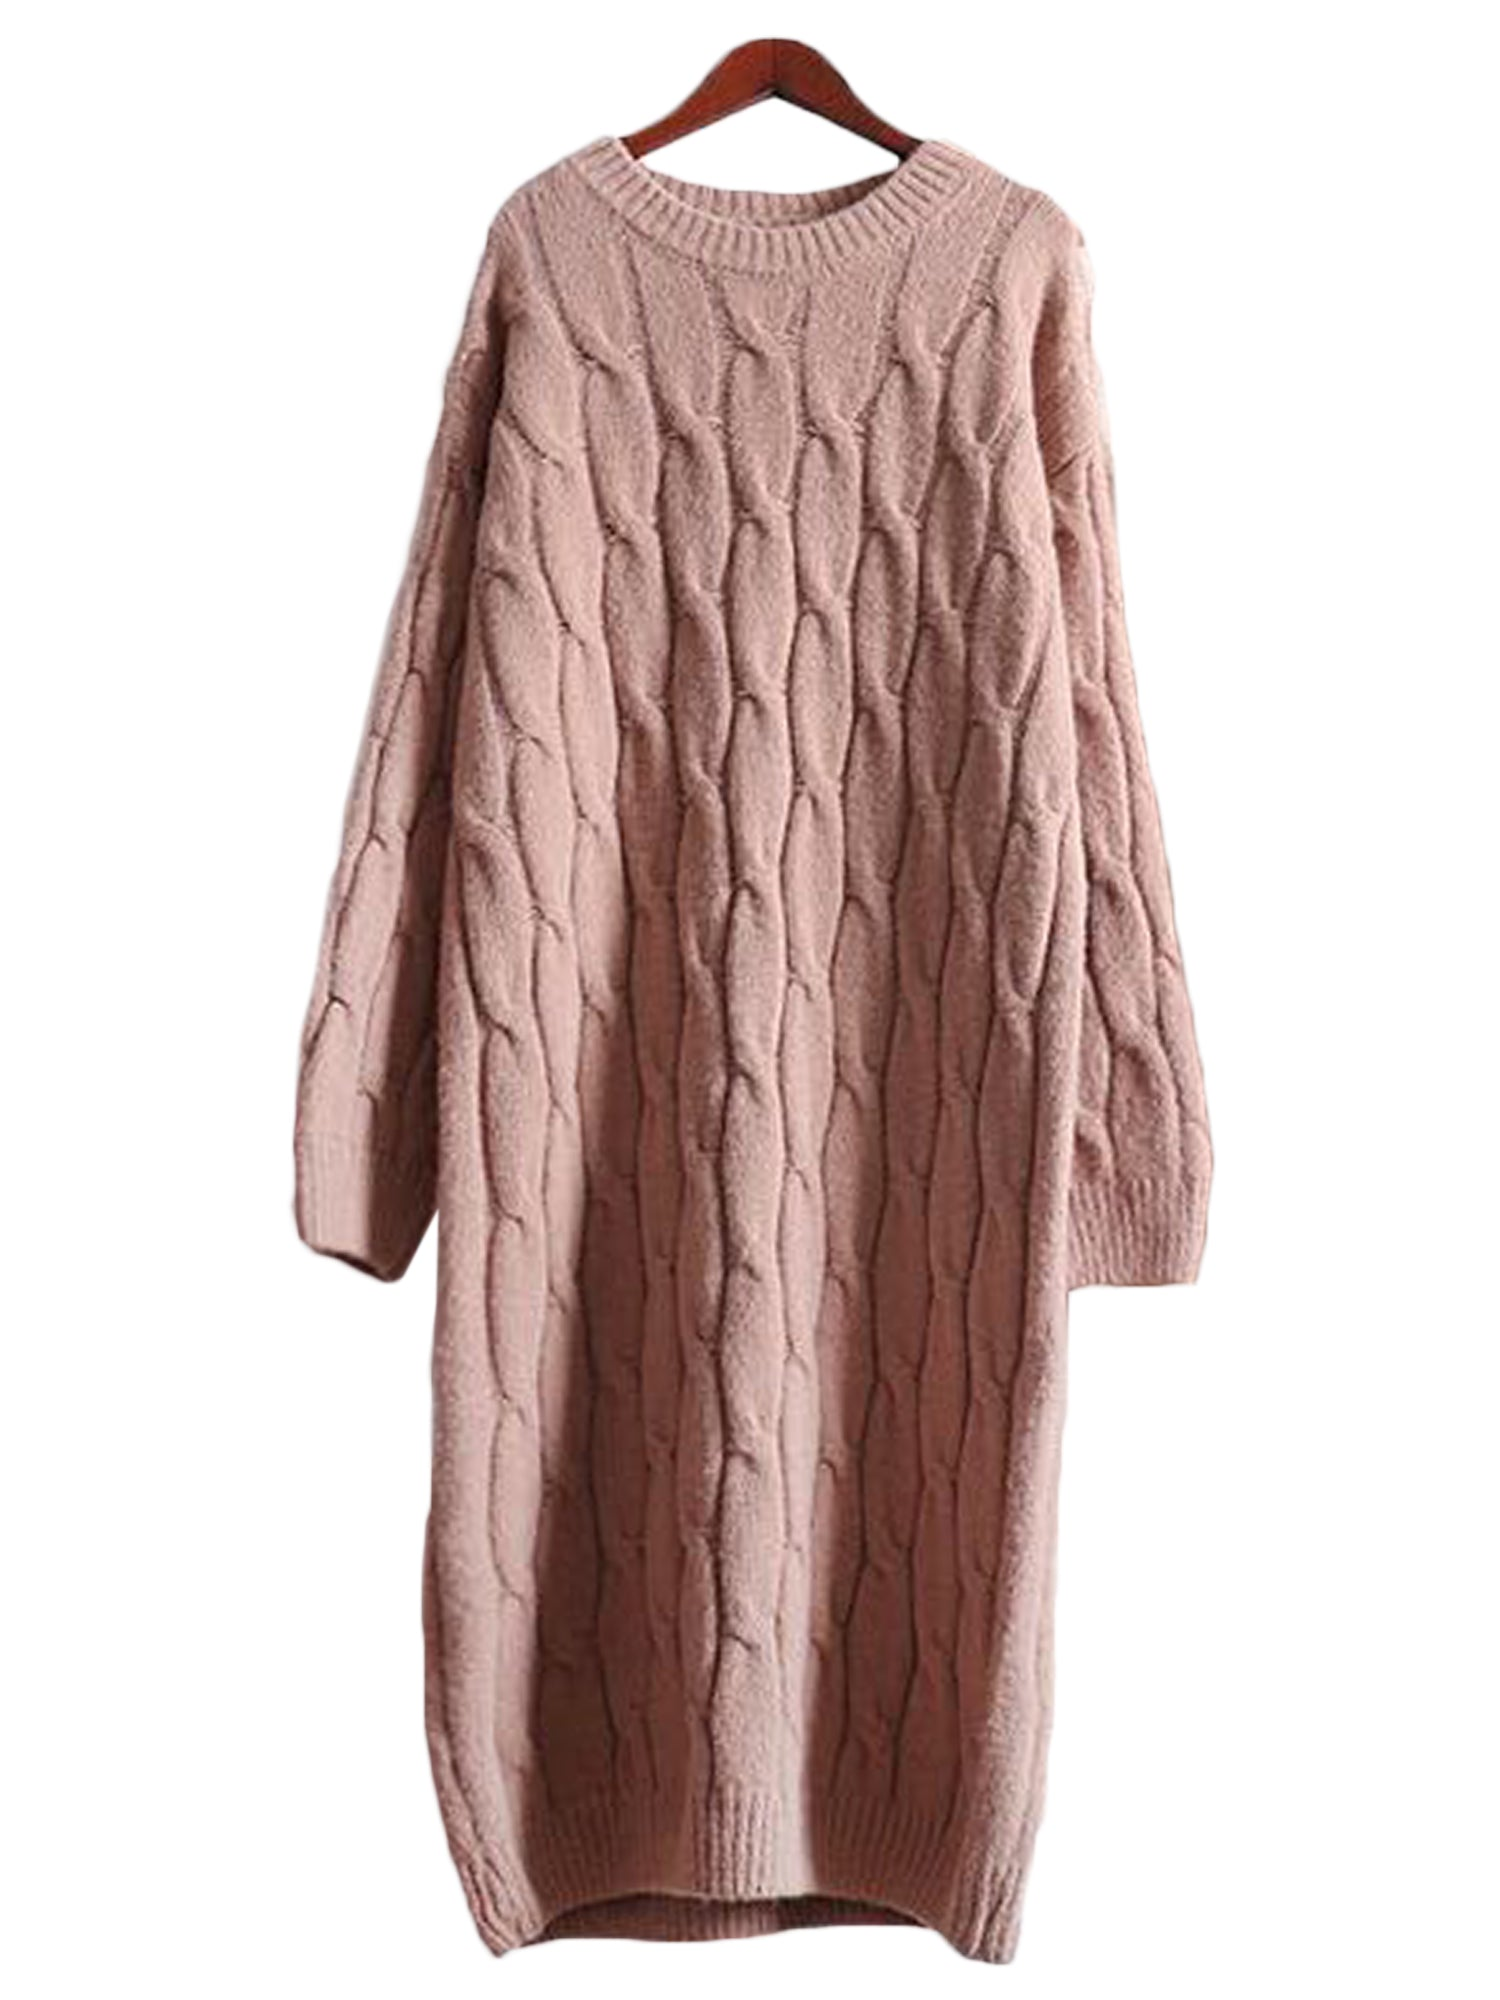 'Lisandra' Cable-knit Dress (3 Colors)